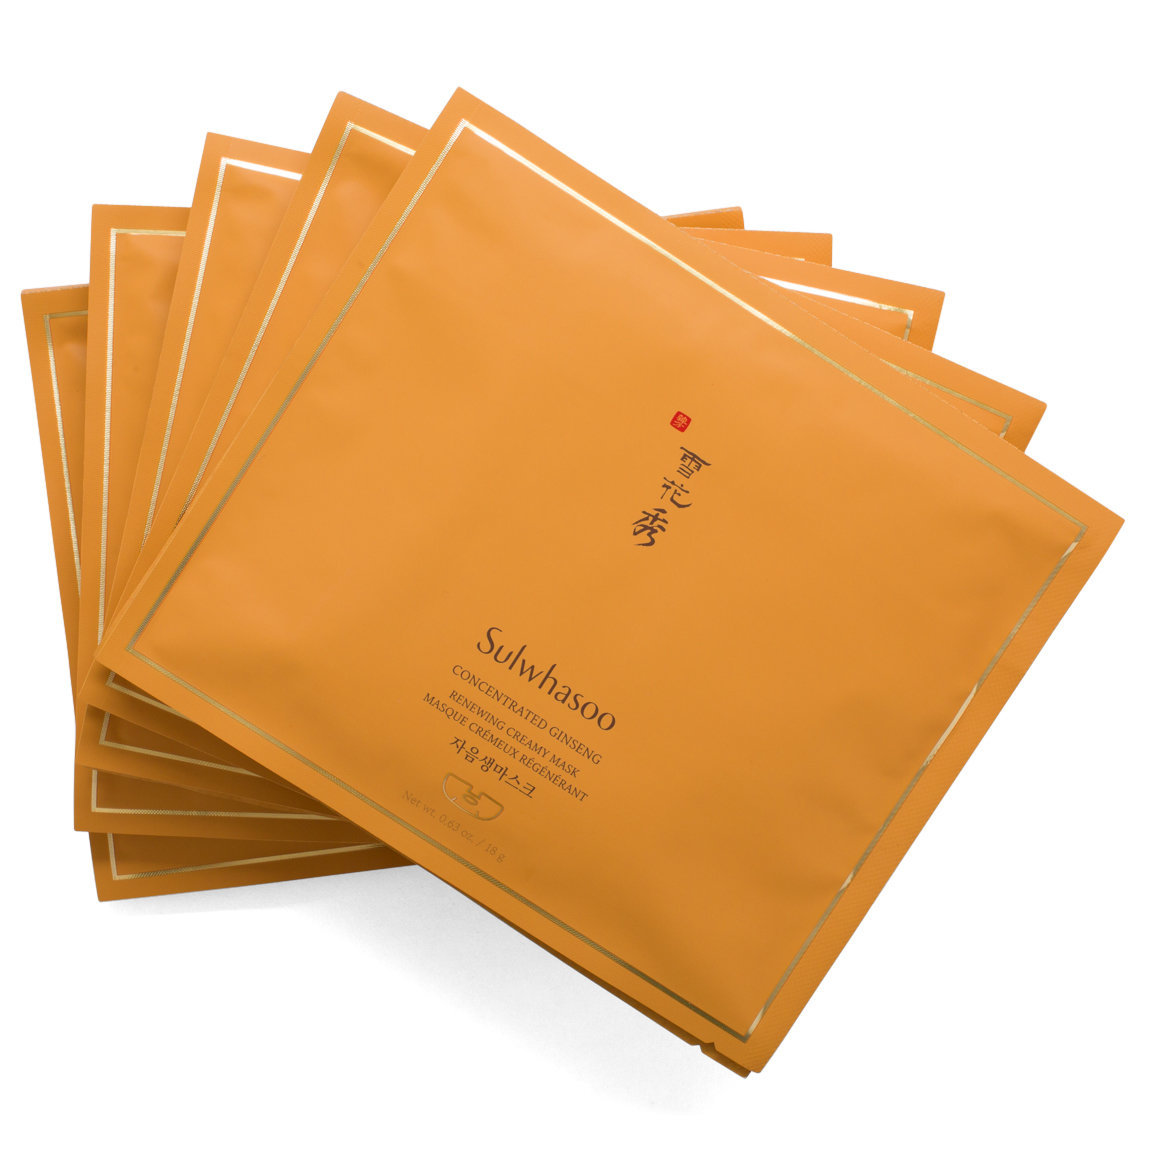 Sulwhasoo Concentrated Ginseng Renewing Creamy Mask product swatch.